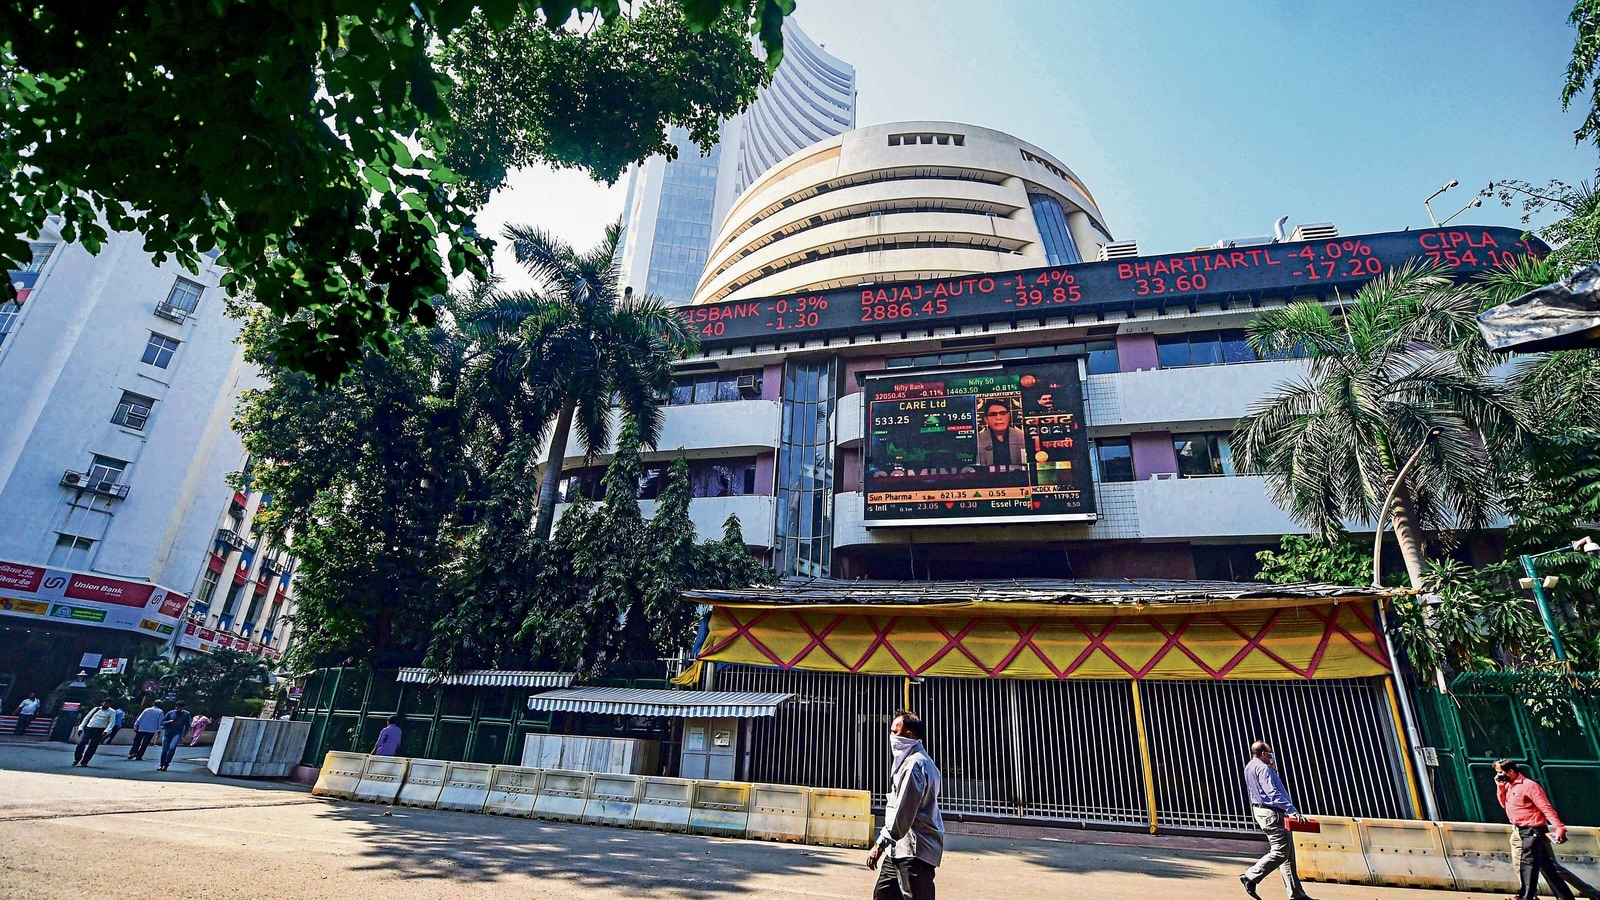 hindustantimes.com - {'@type':'Thing','name':'Bloomberg'} - NSE halts trading after telecom disruption